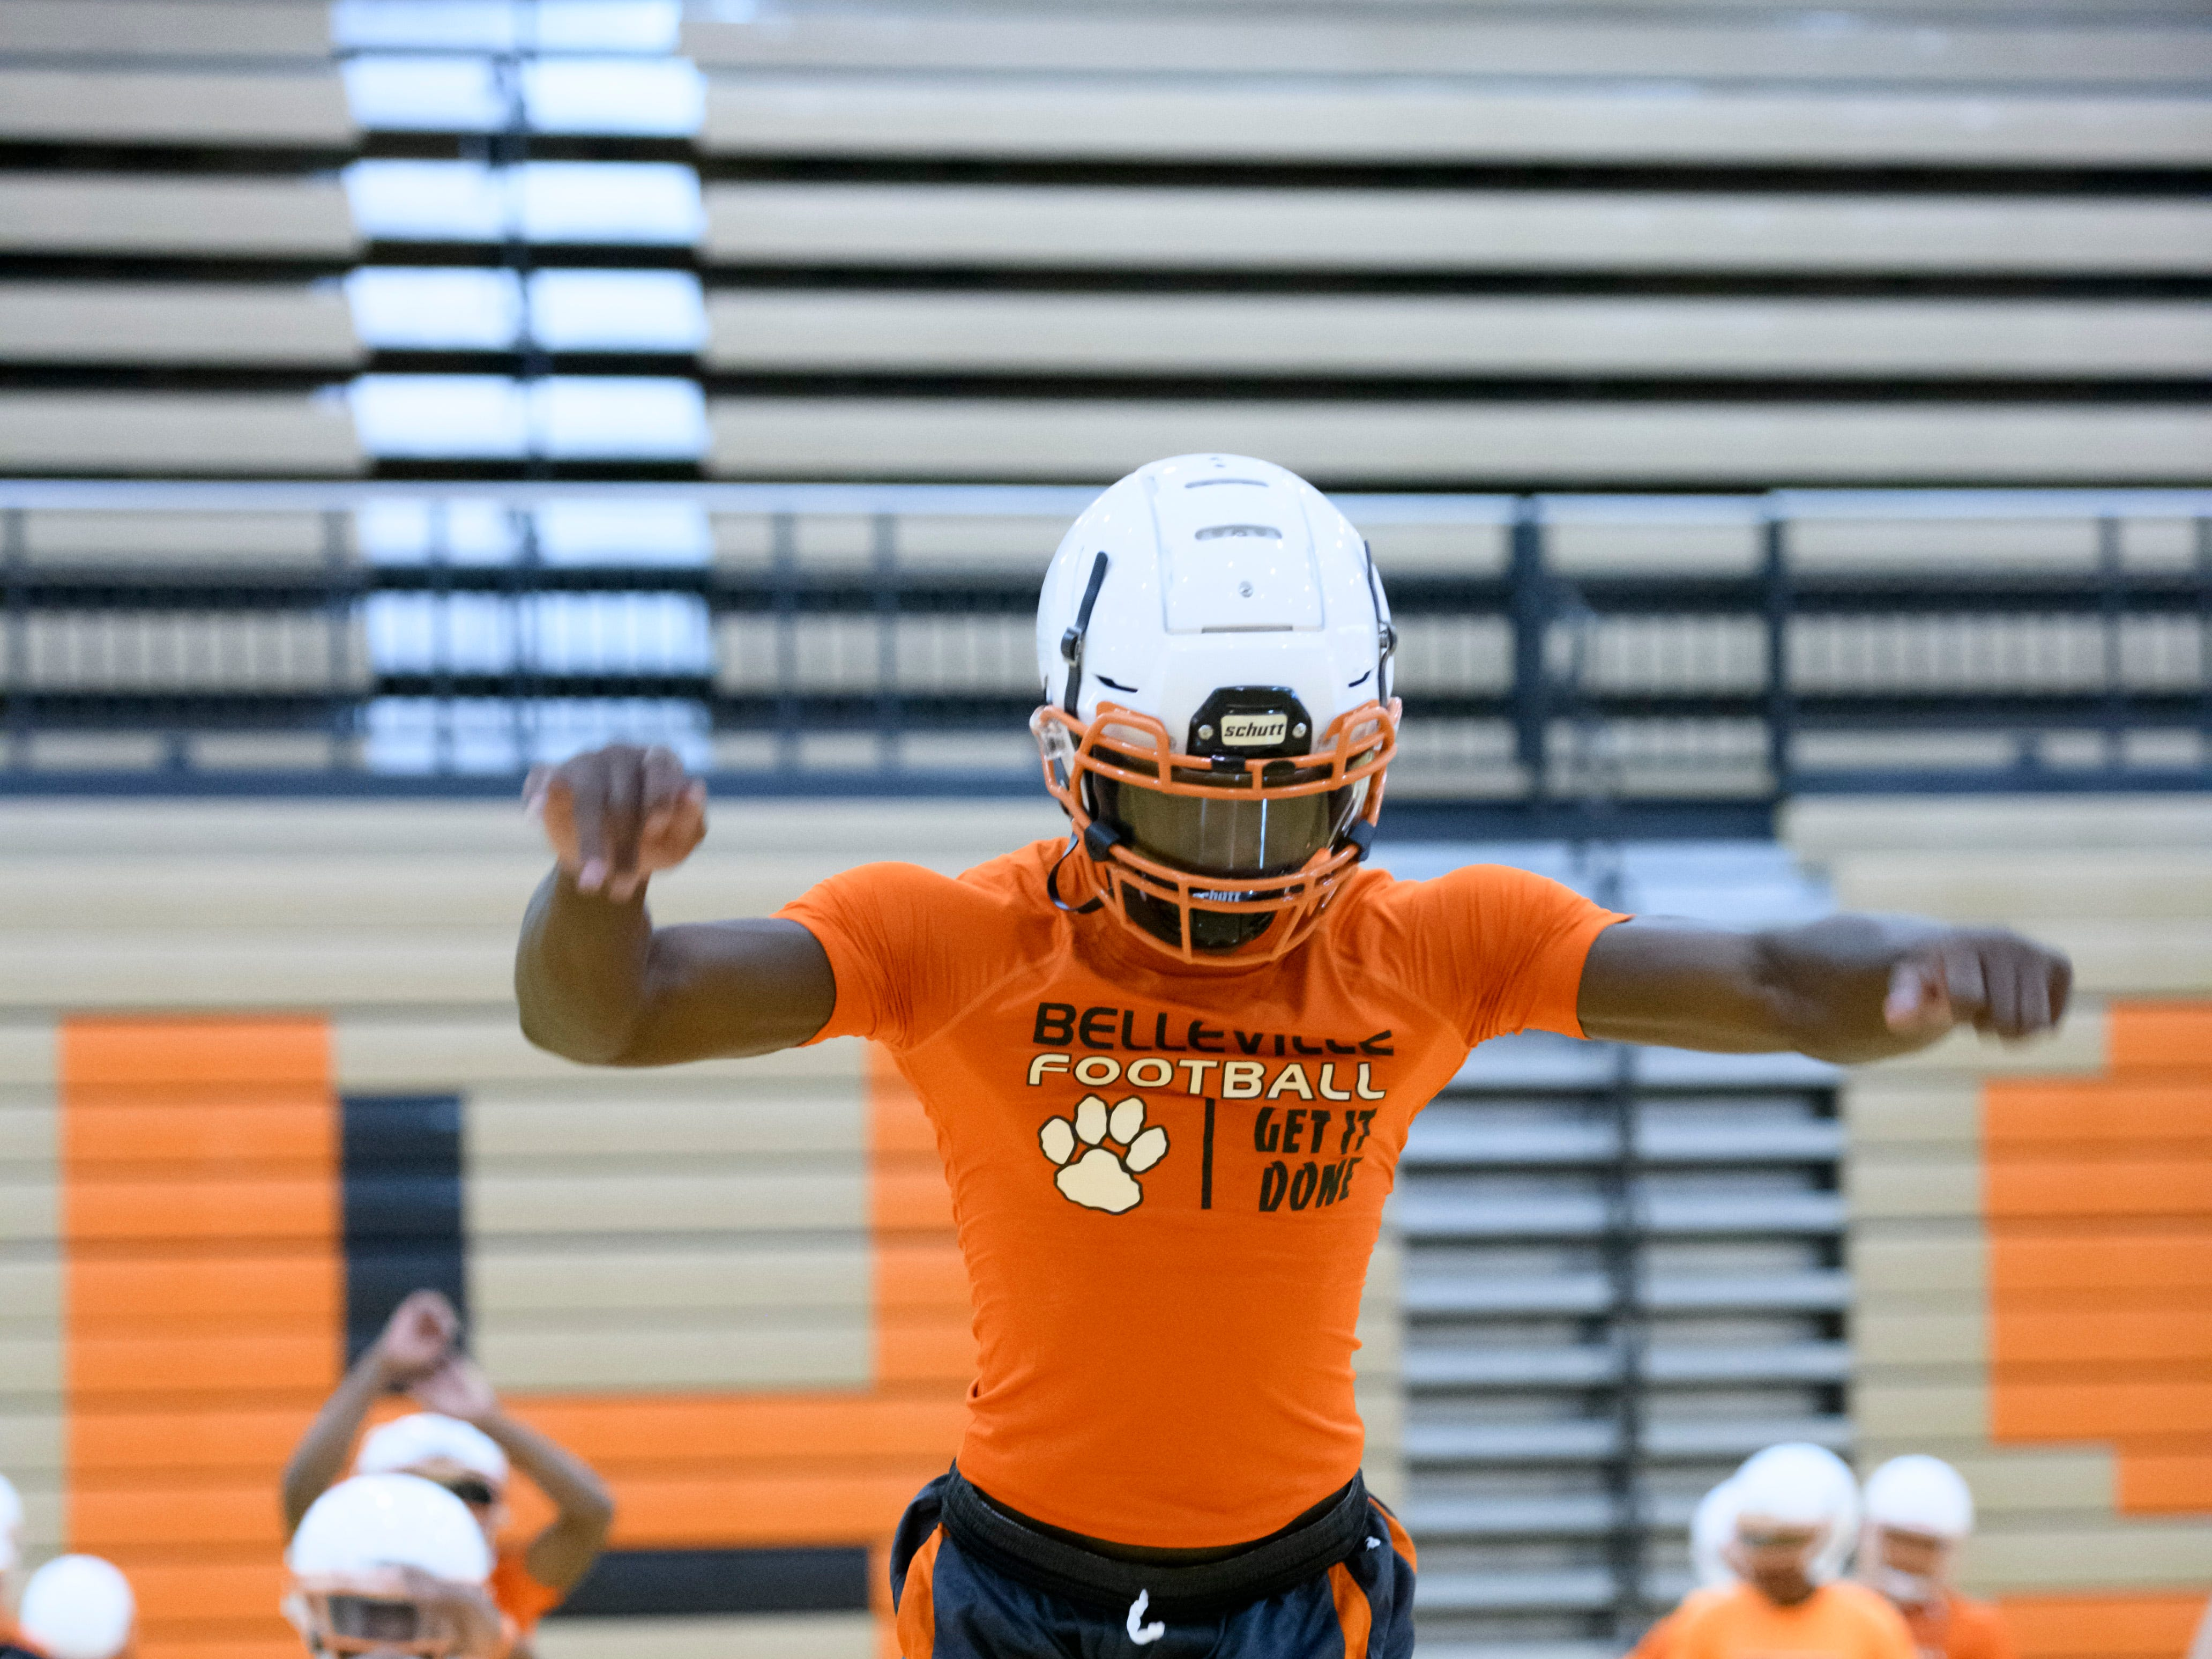 Belleville's Julian Barnett leaps forward while working out in the gym.